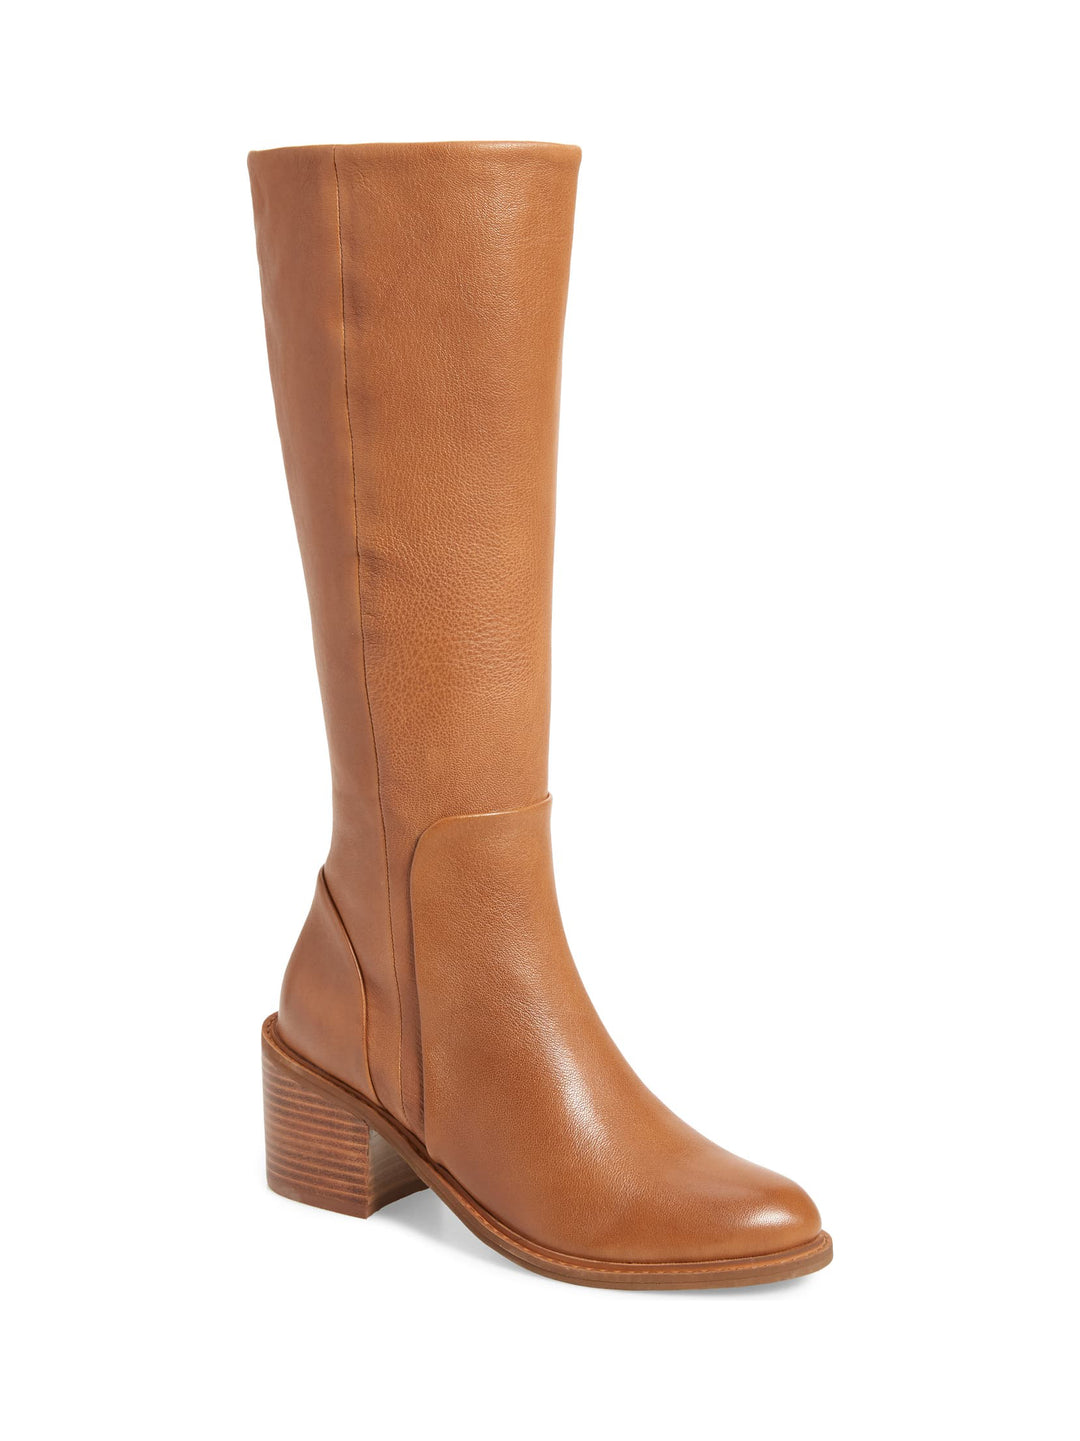 Avon Natural Tall Leather Boot